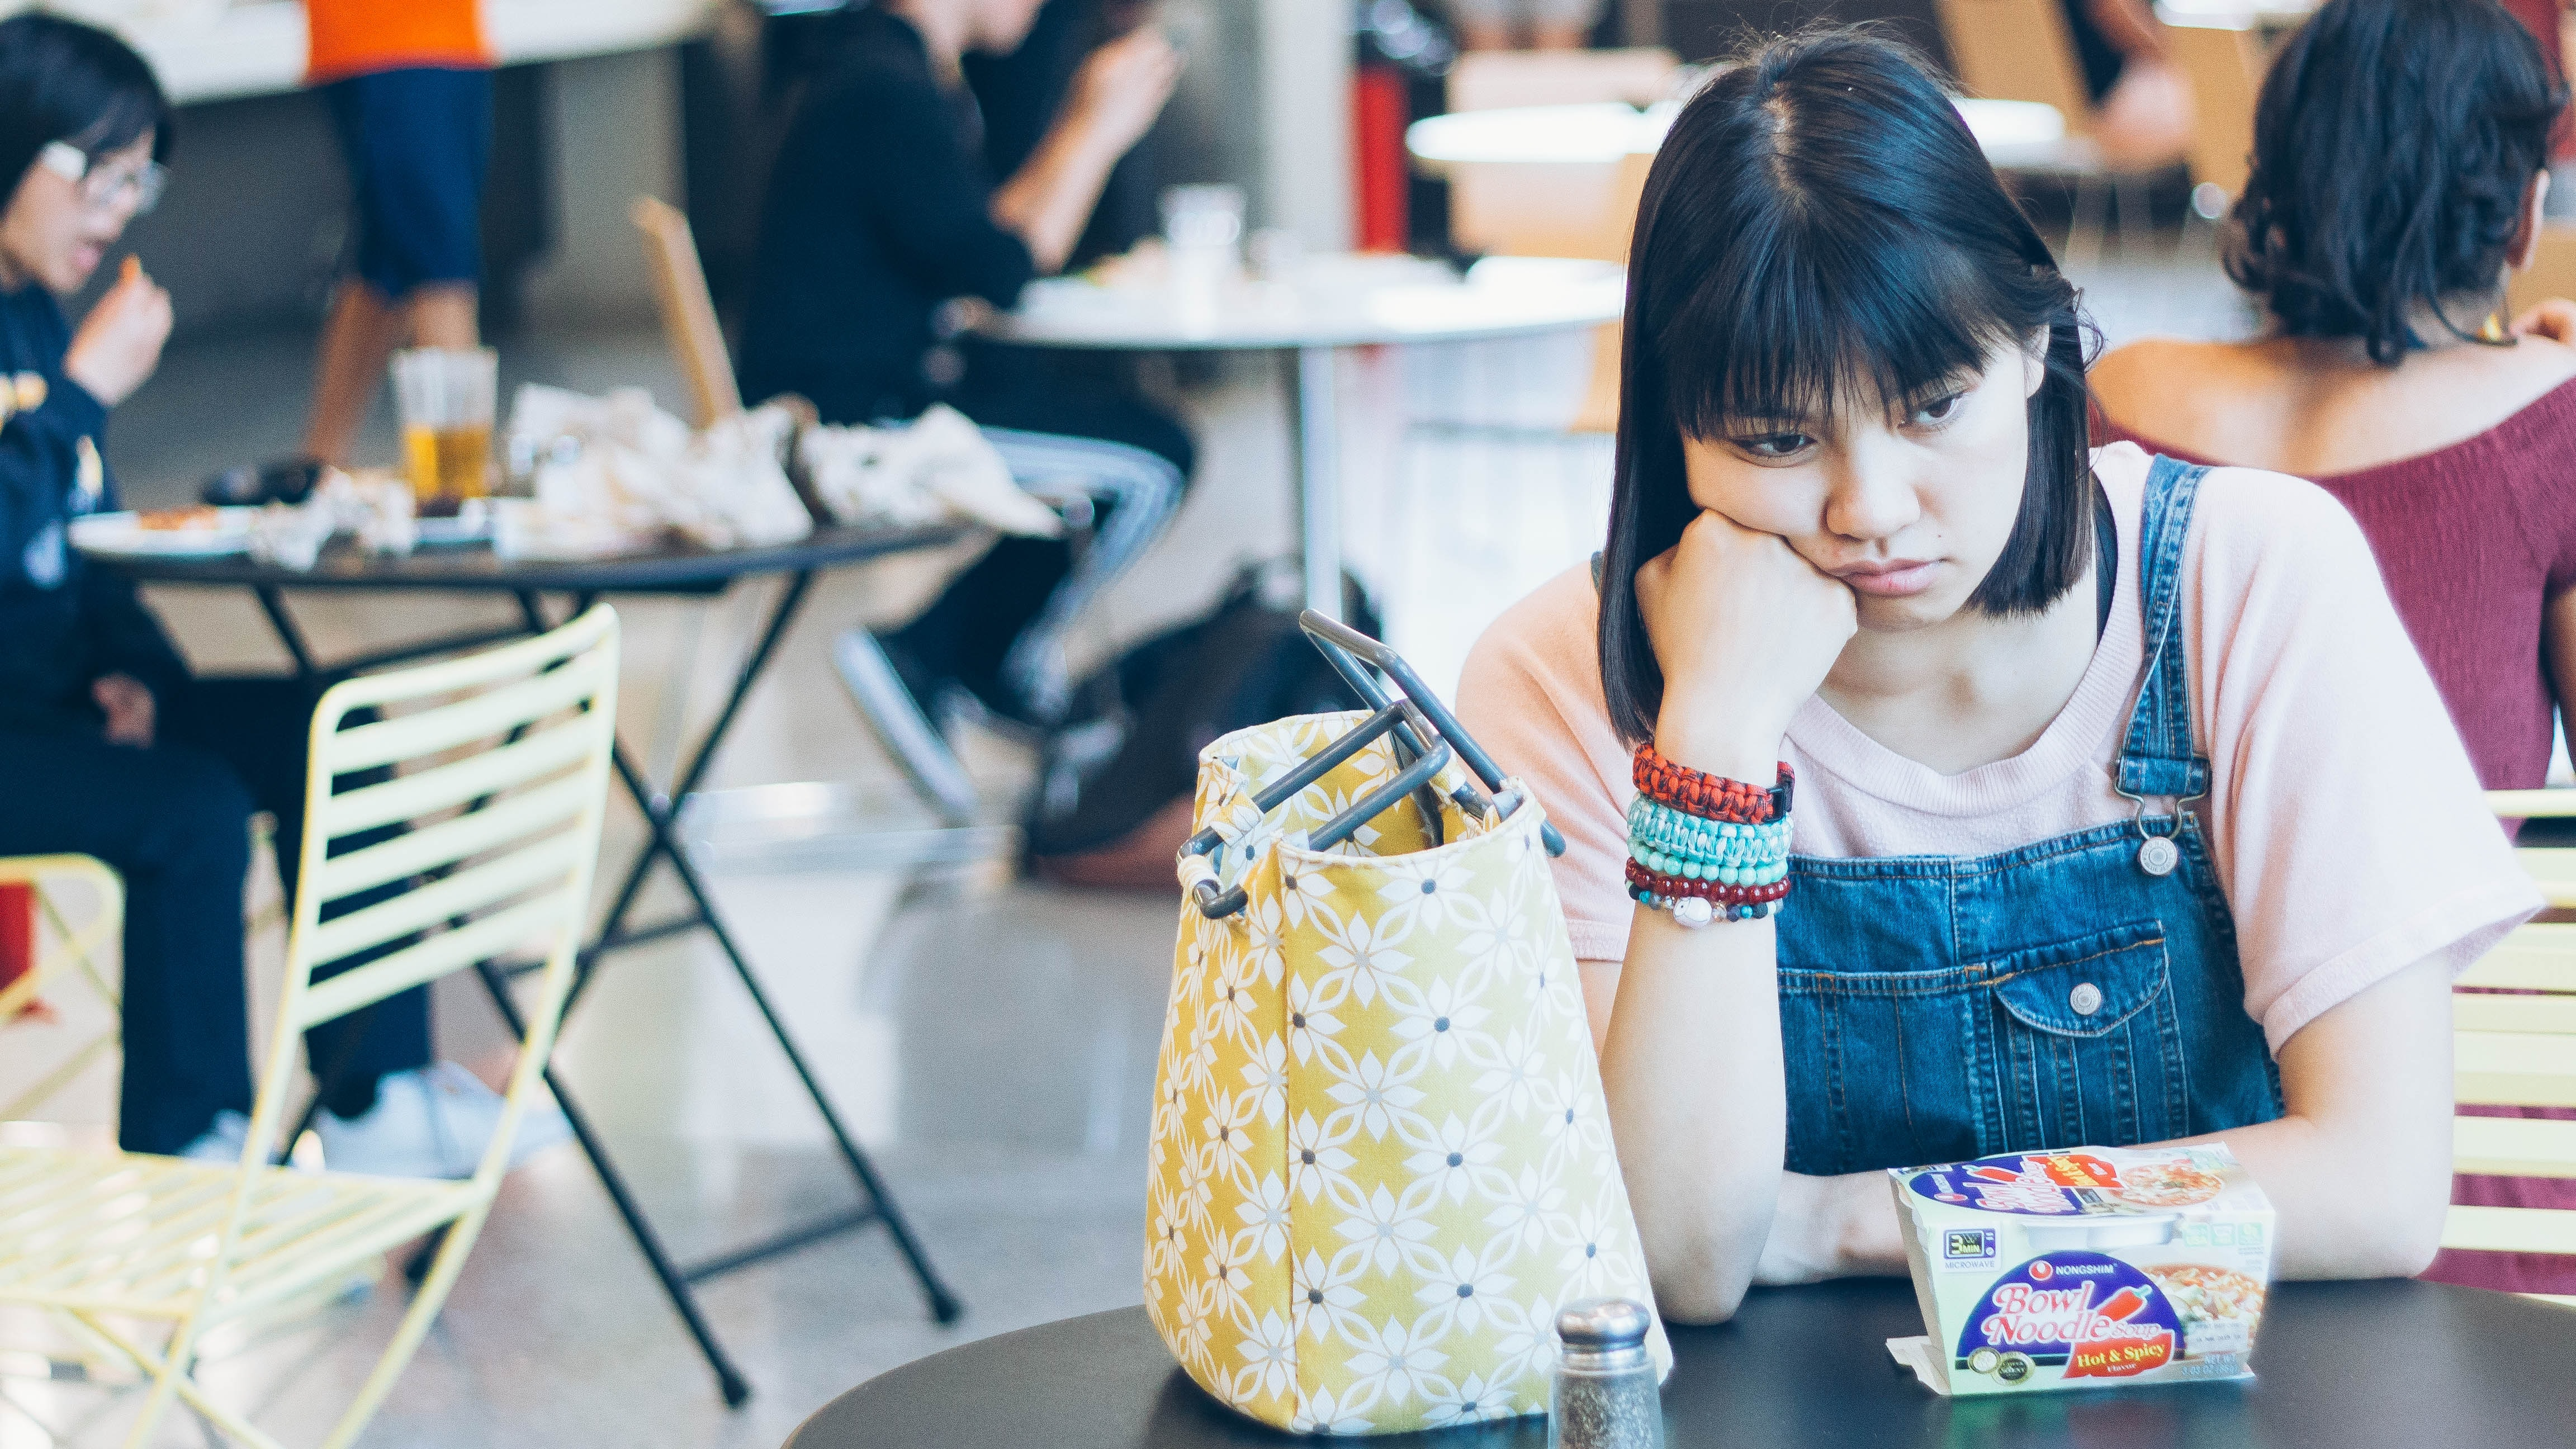 female student looking fed up at sitting at table